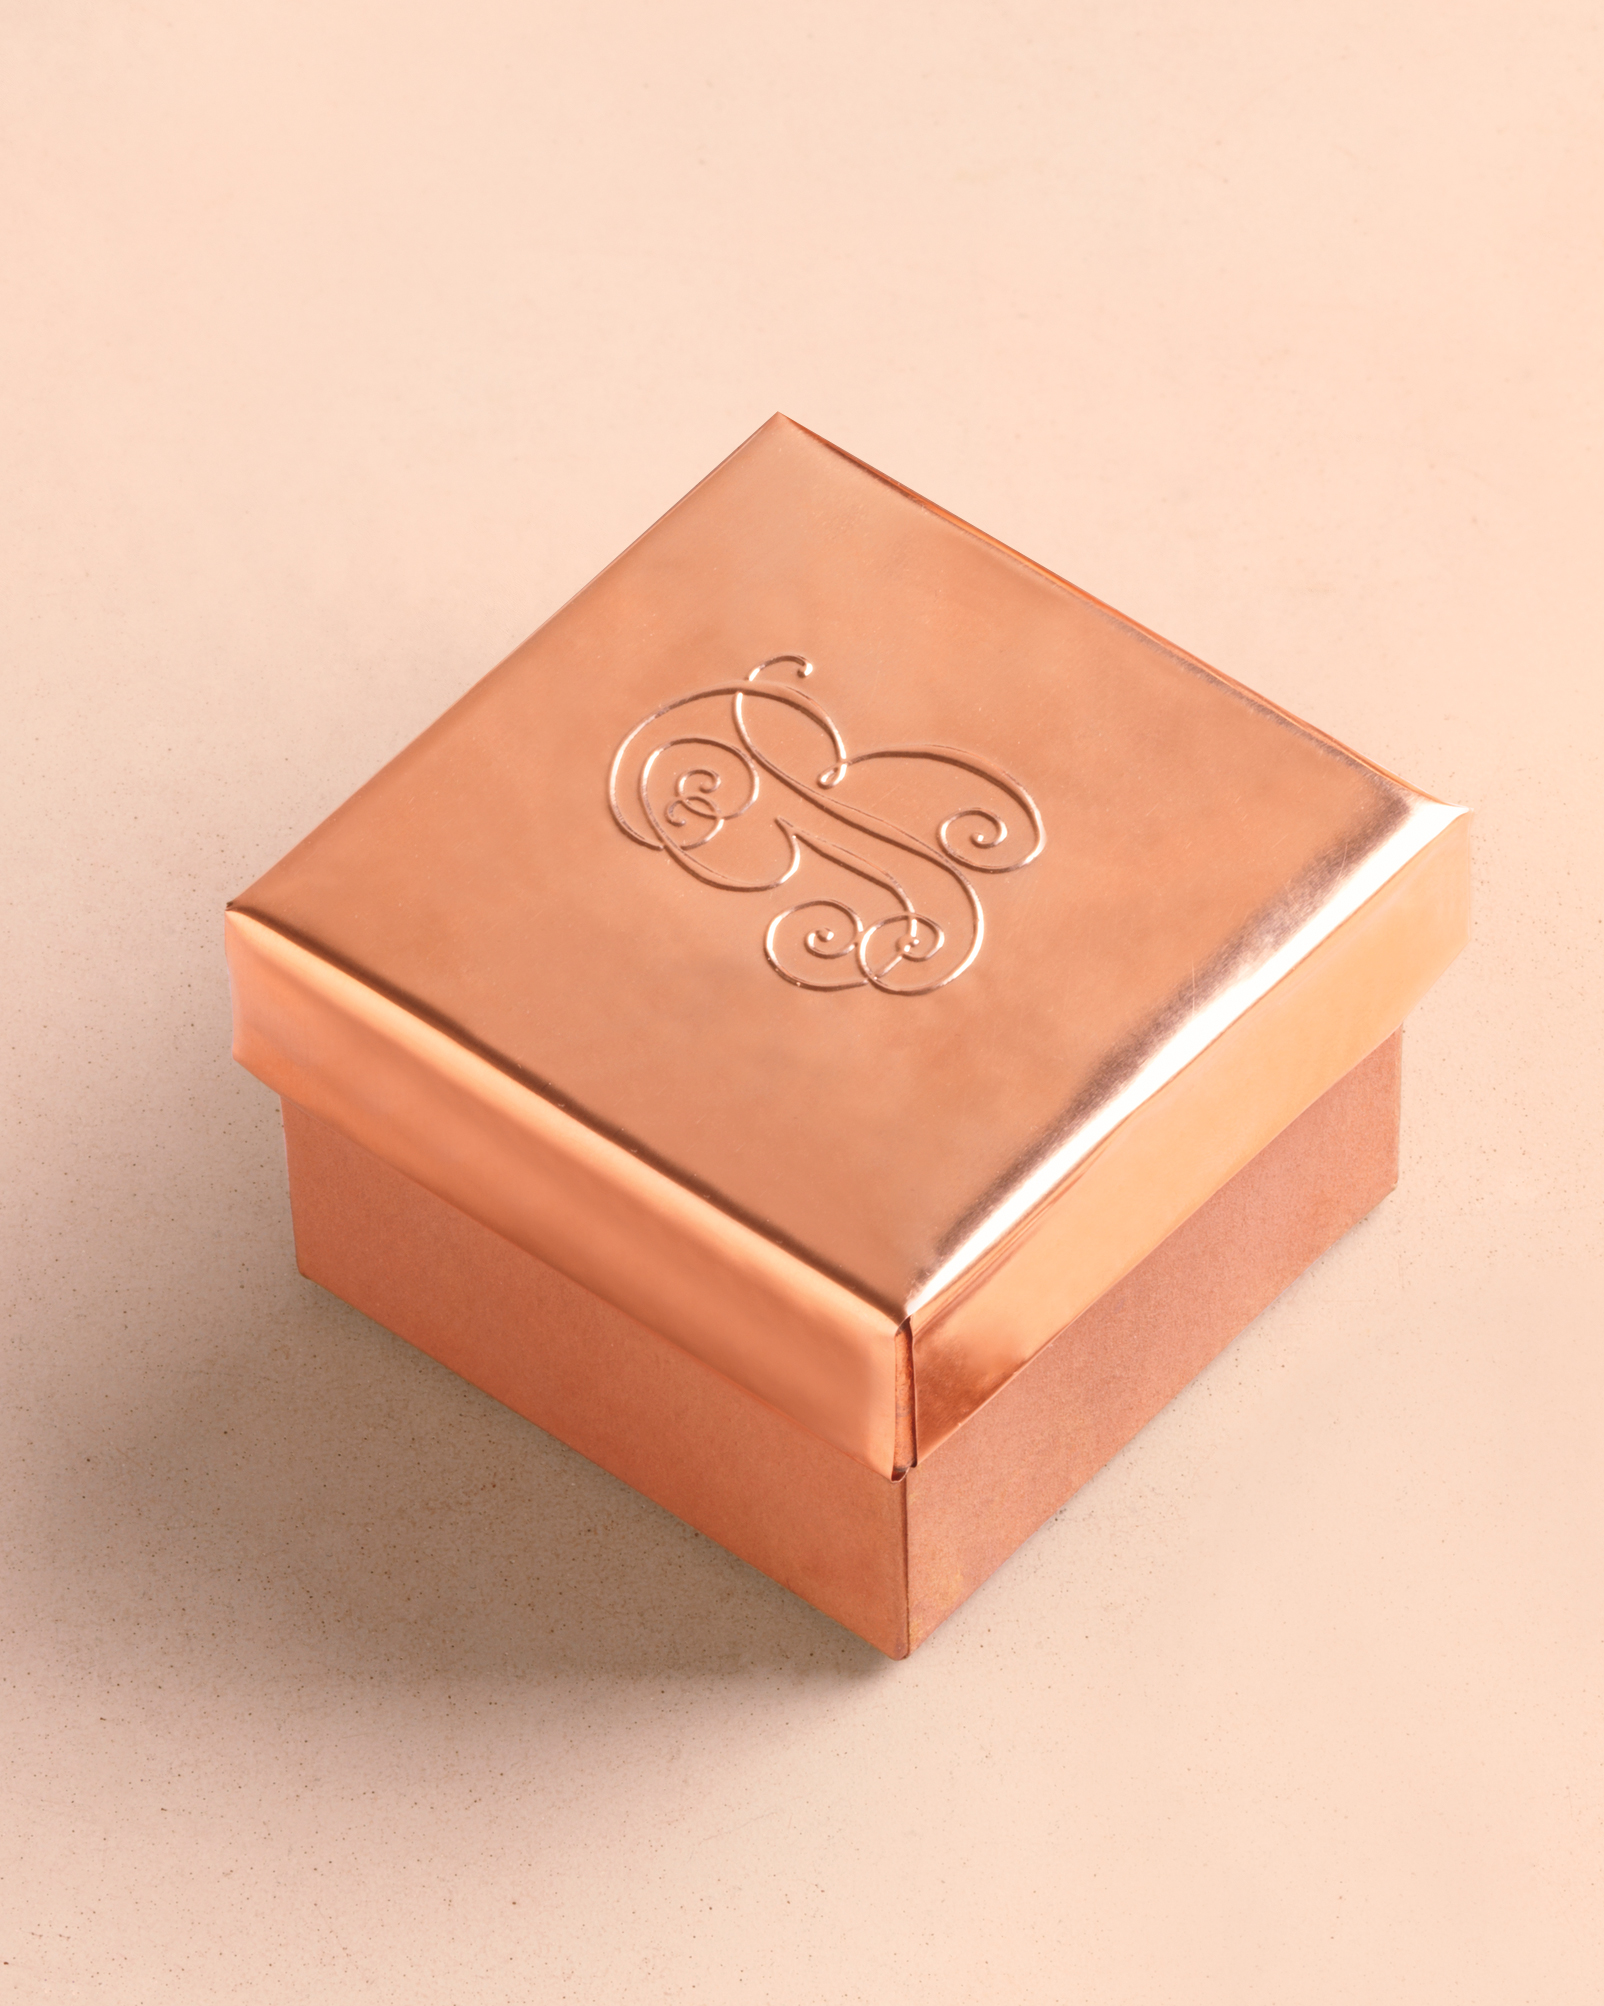 copper-ring-boxes-just-box-0032-d111902.jpg